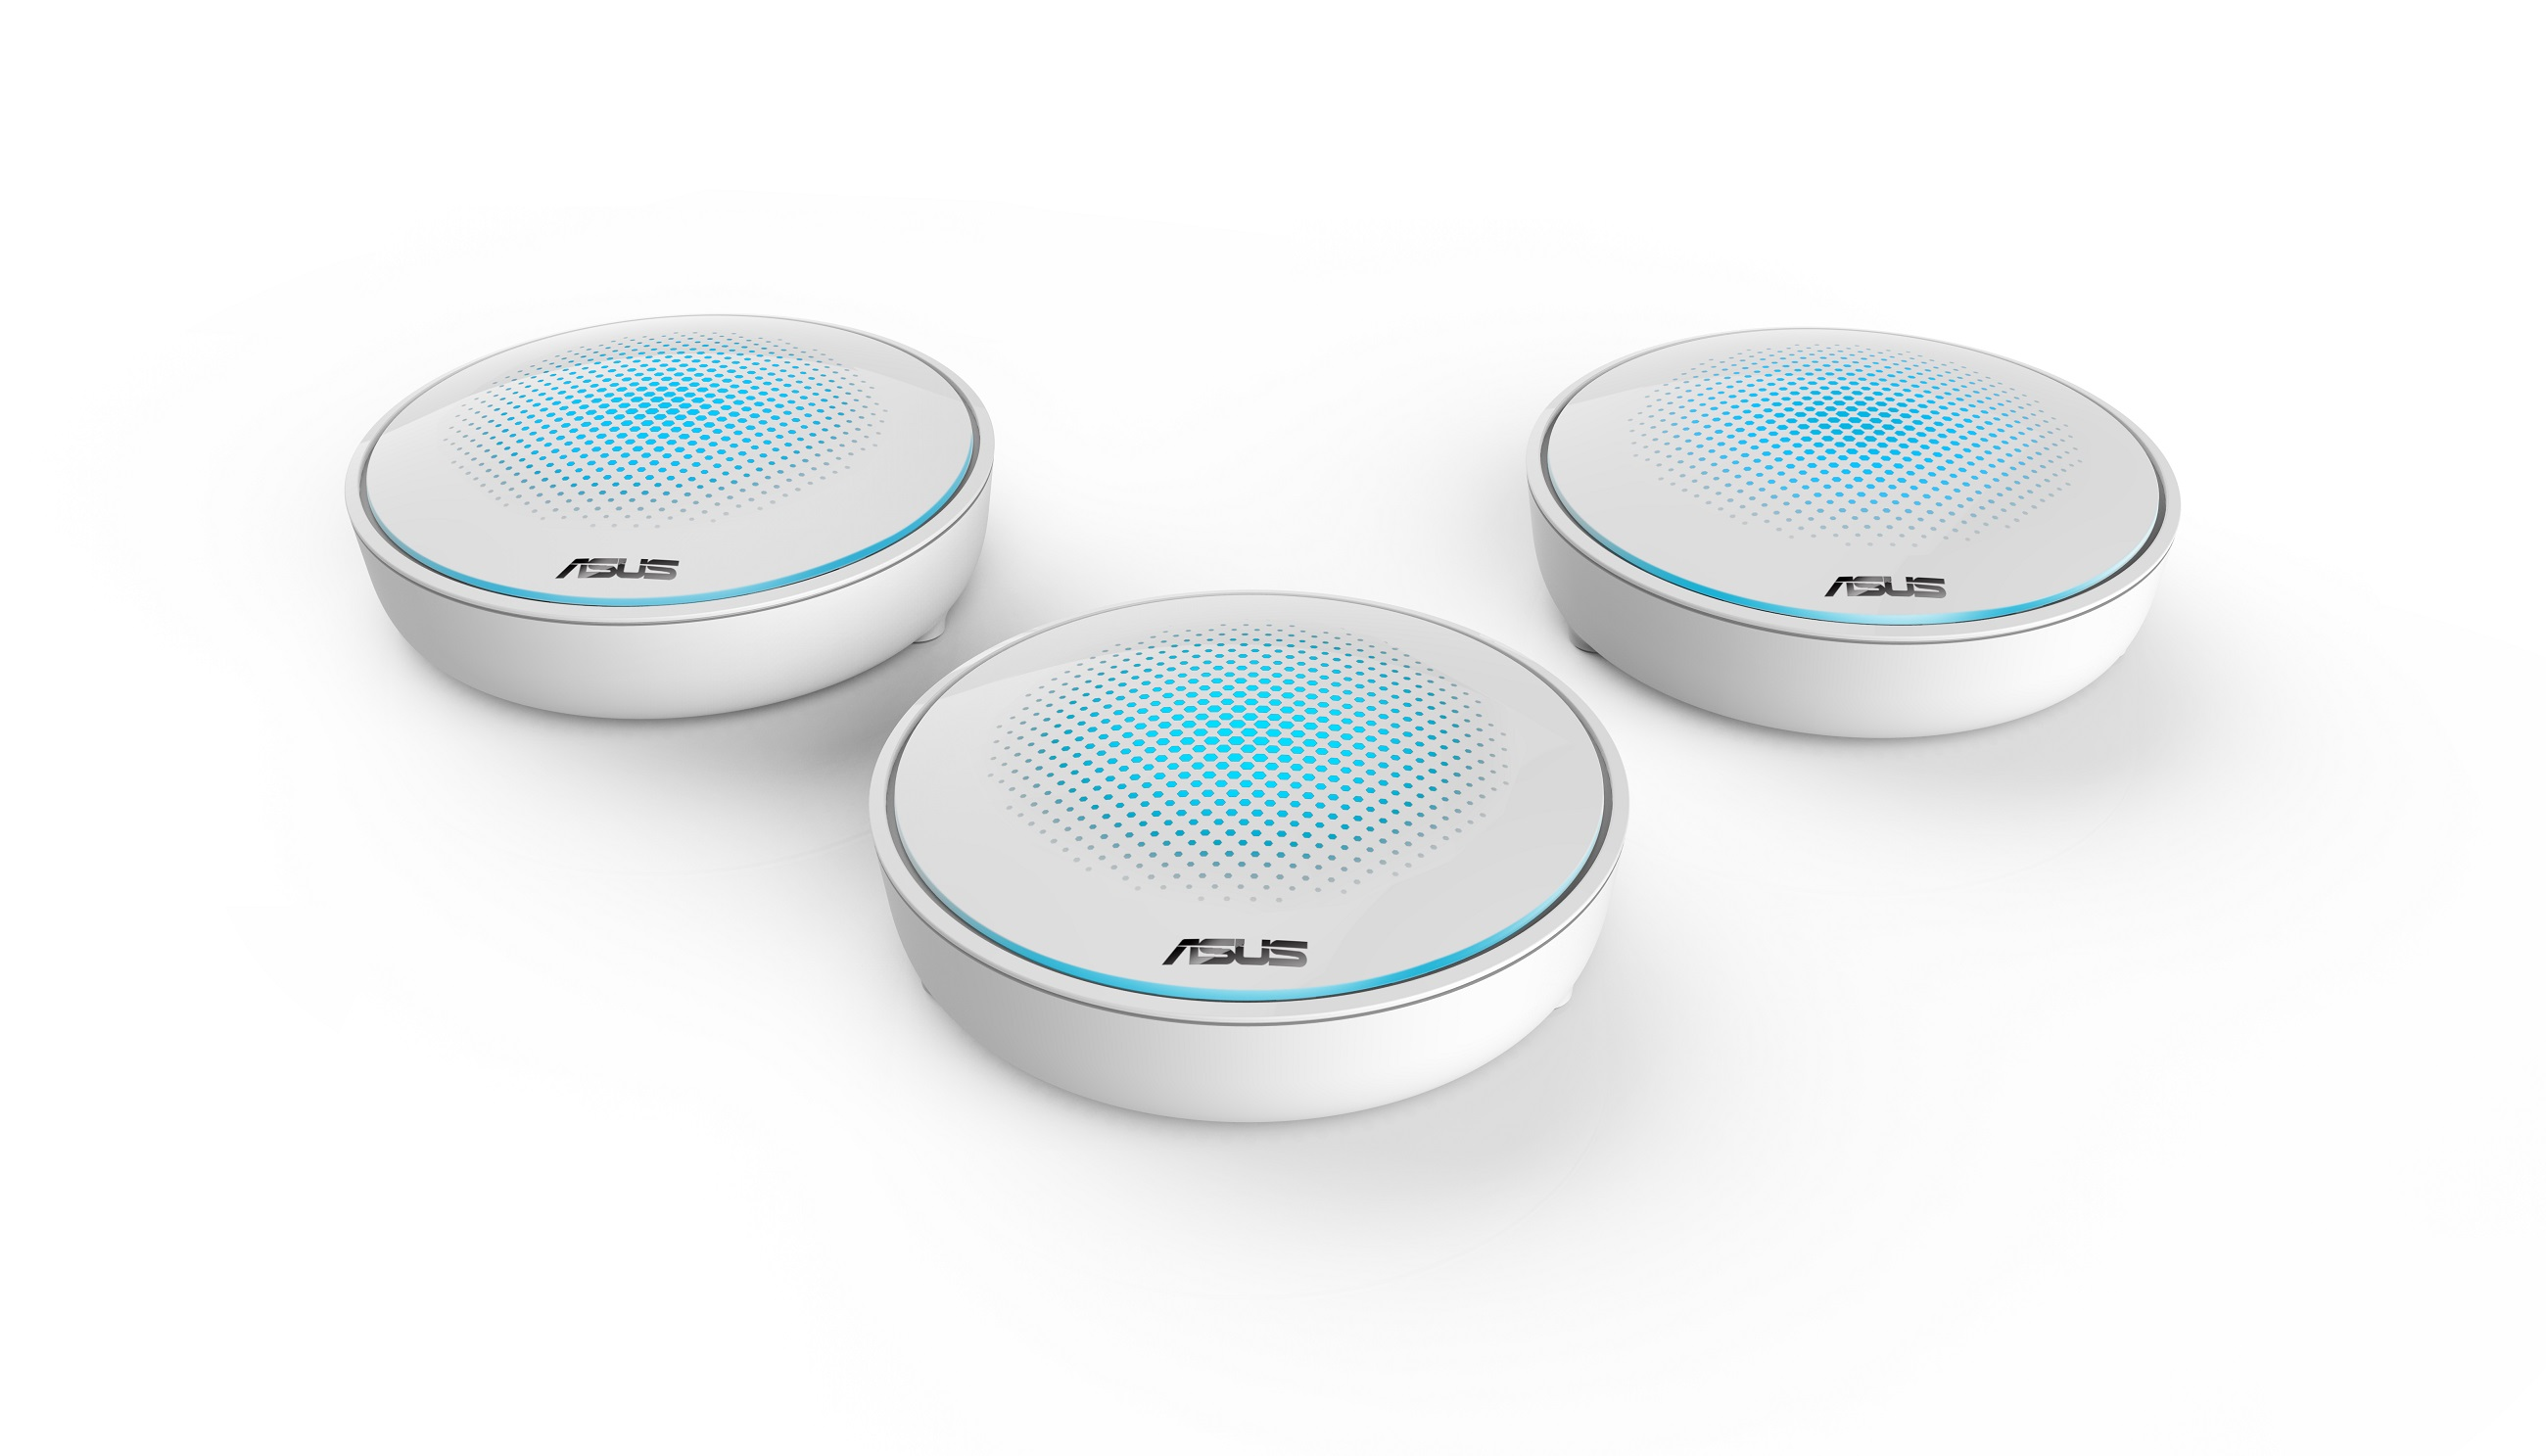 Asus launches Lyra home Wi-Fi system with built-in security